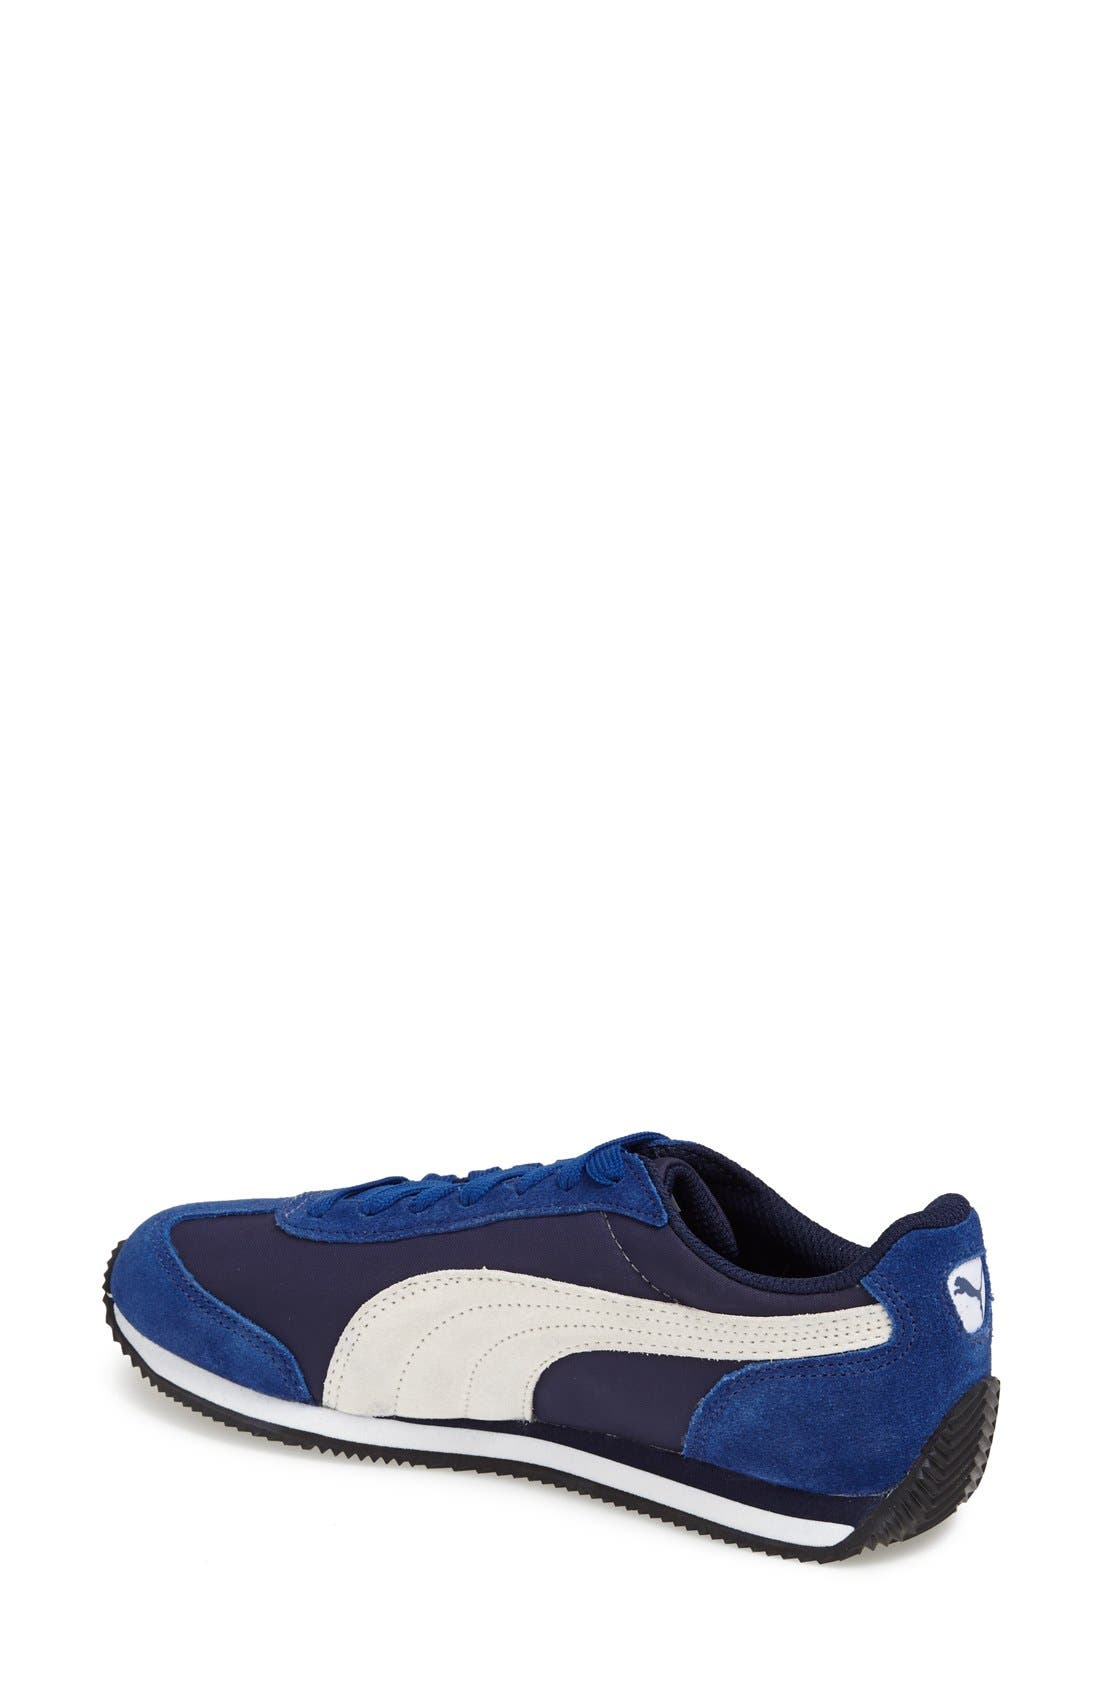 Alternate Image 2  - PUMA 'Rio Speed NL' Sneaker (Women)